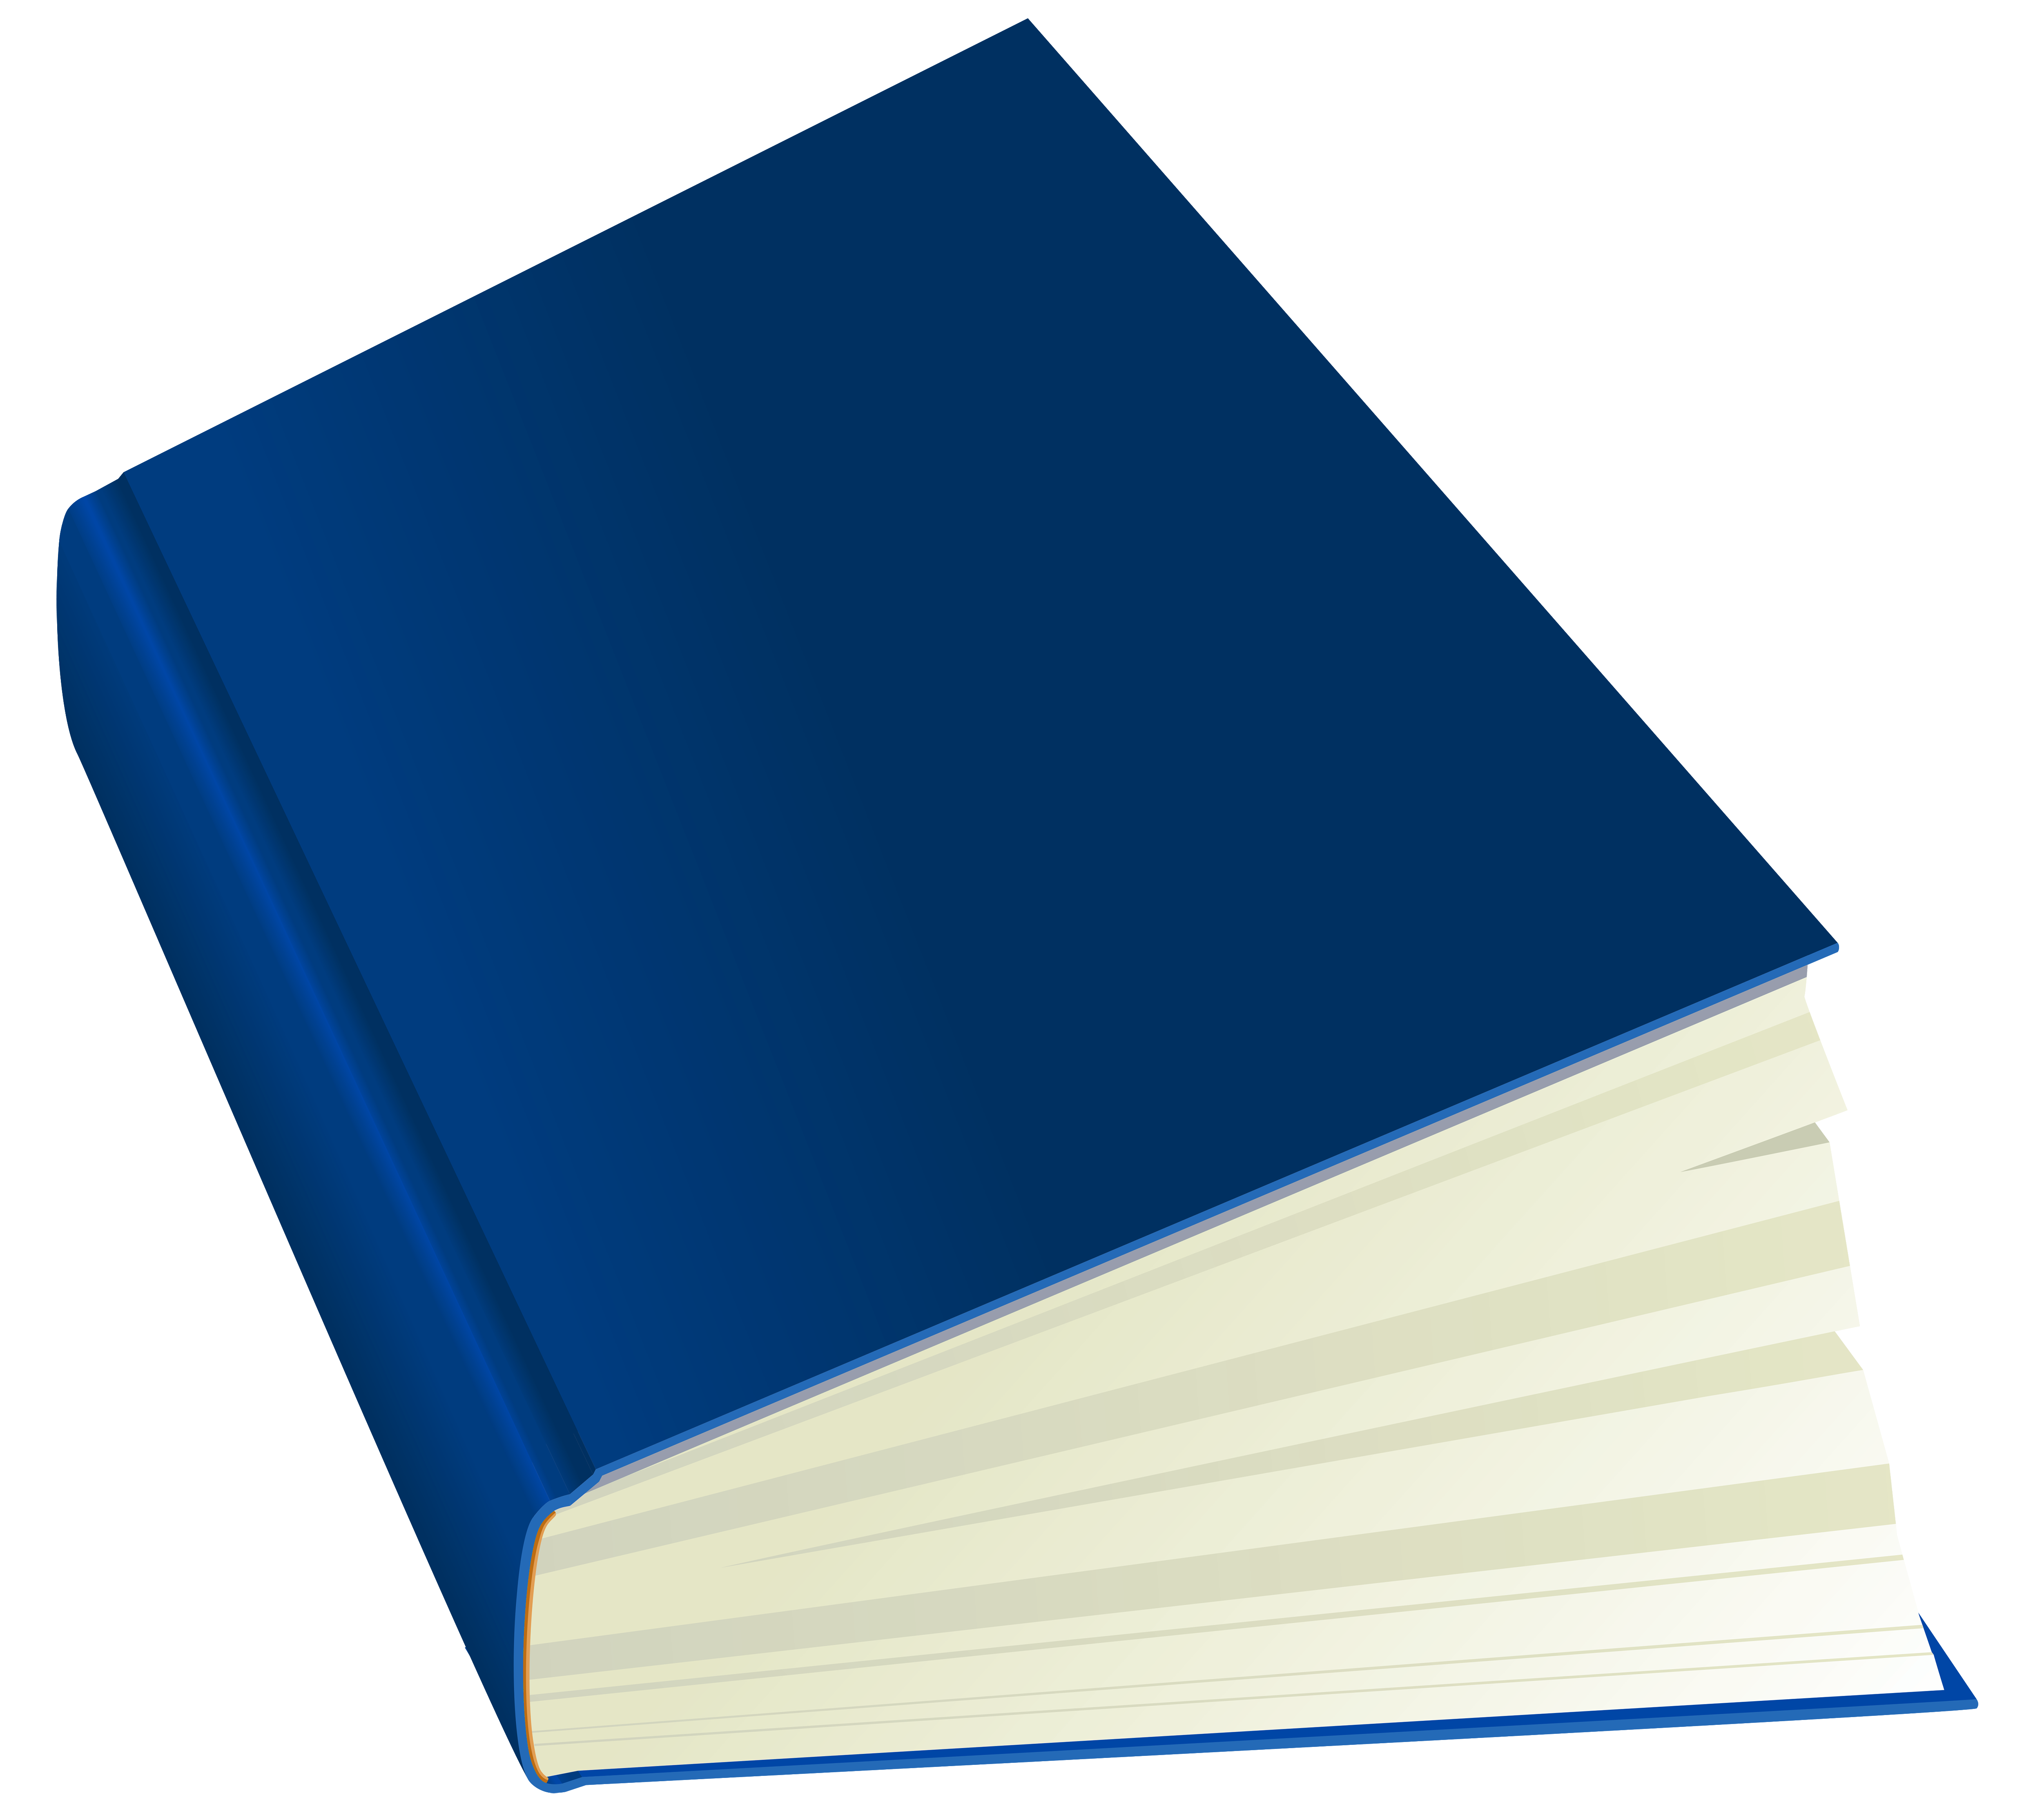 jpg royalty free Book clipart blue. Png best web